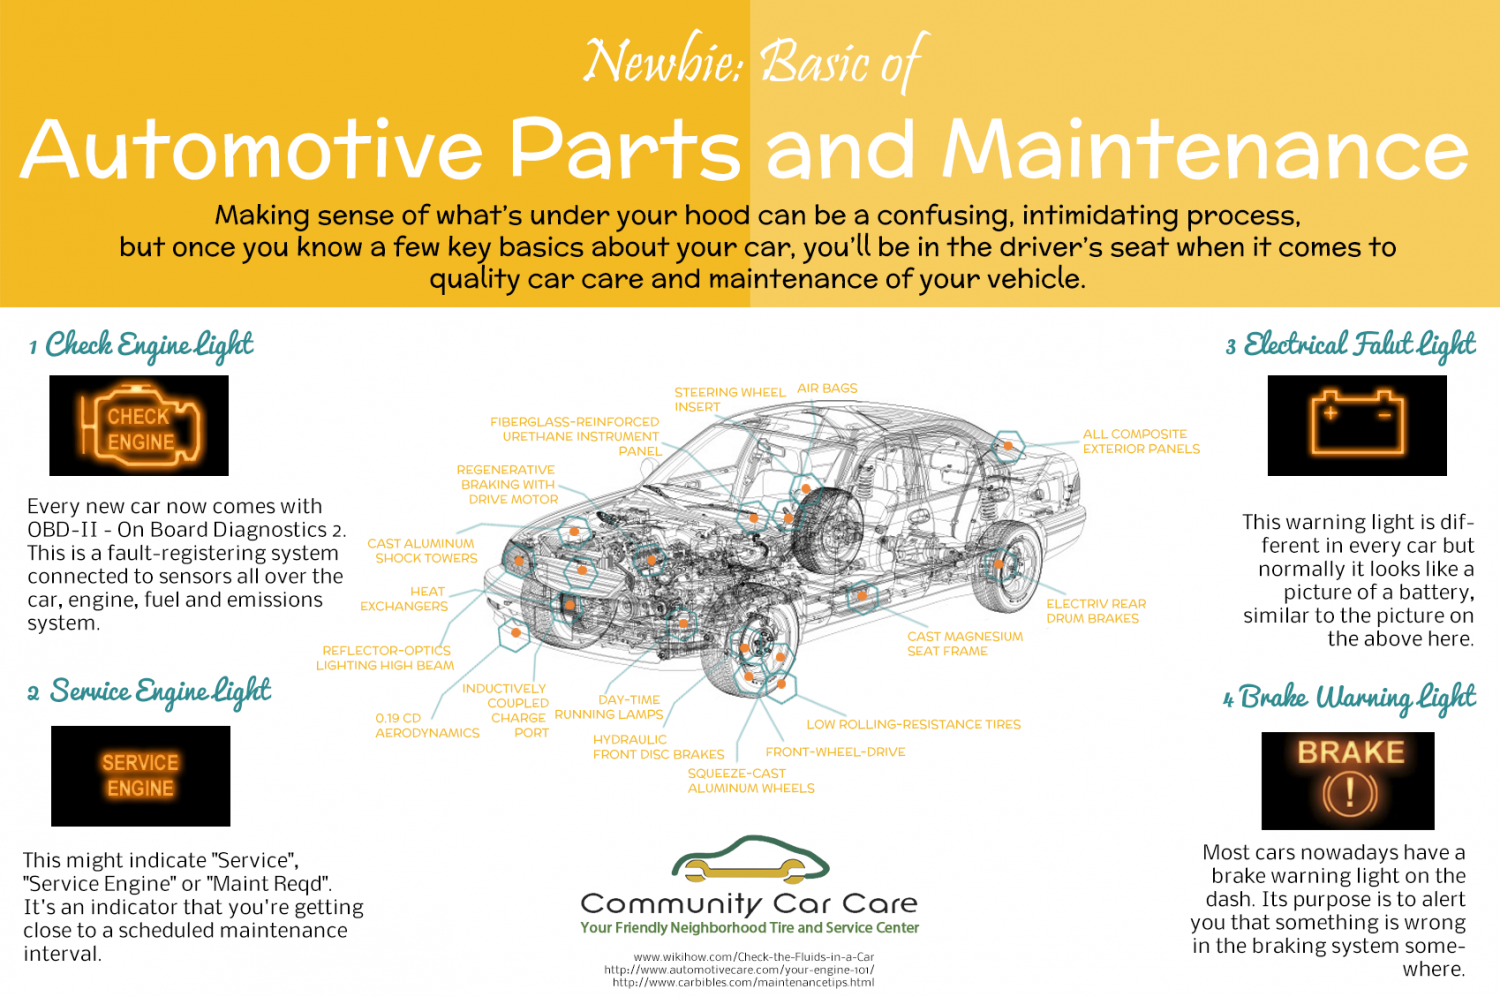 Newbie: Basic of Automotive Parts and Maintenance Infographic